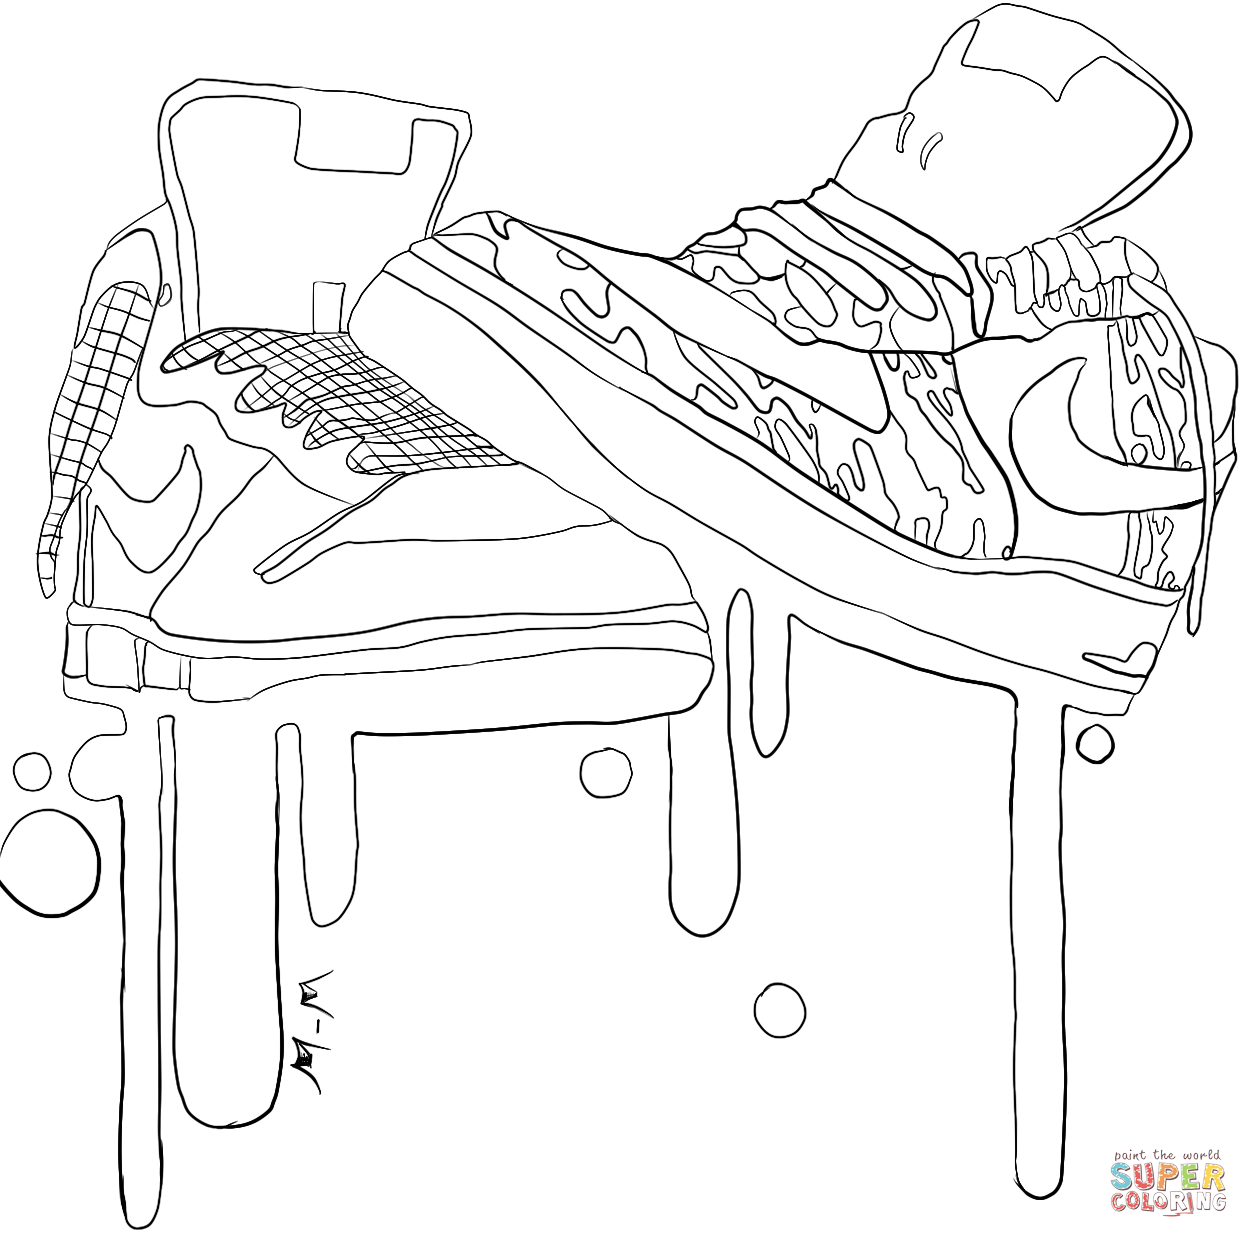 images of shoes to color shoes coloring pages getcoloringpagescom color images to of shoes